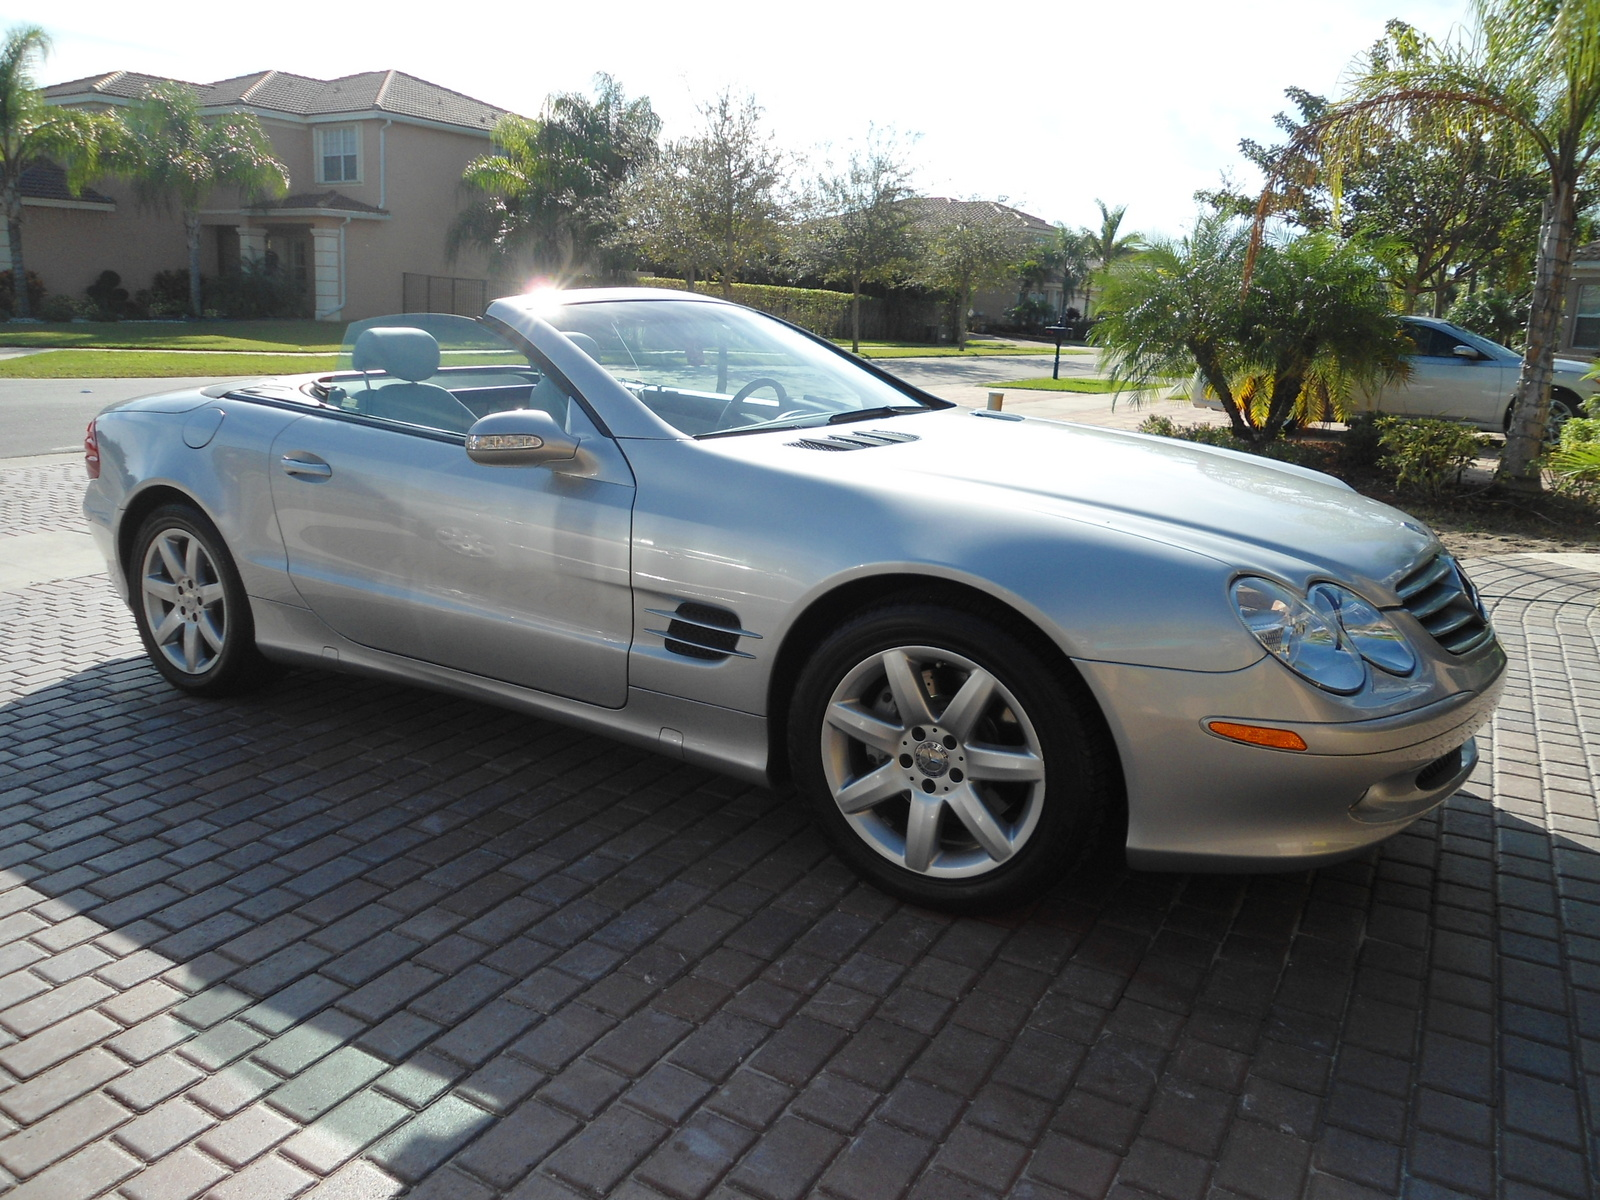 2003 mercedes benz sl class pictures cargurus for Mercedes benz sl convertible